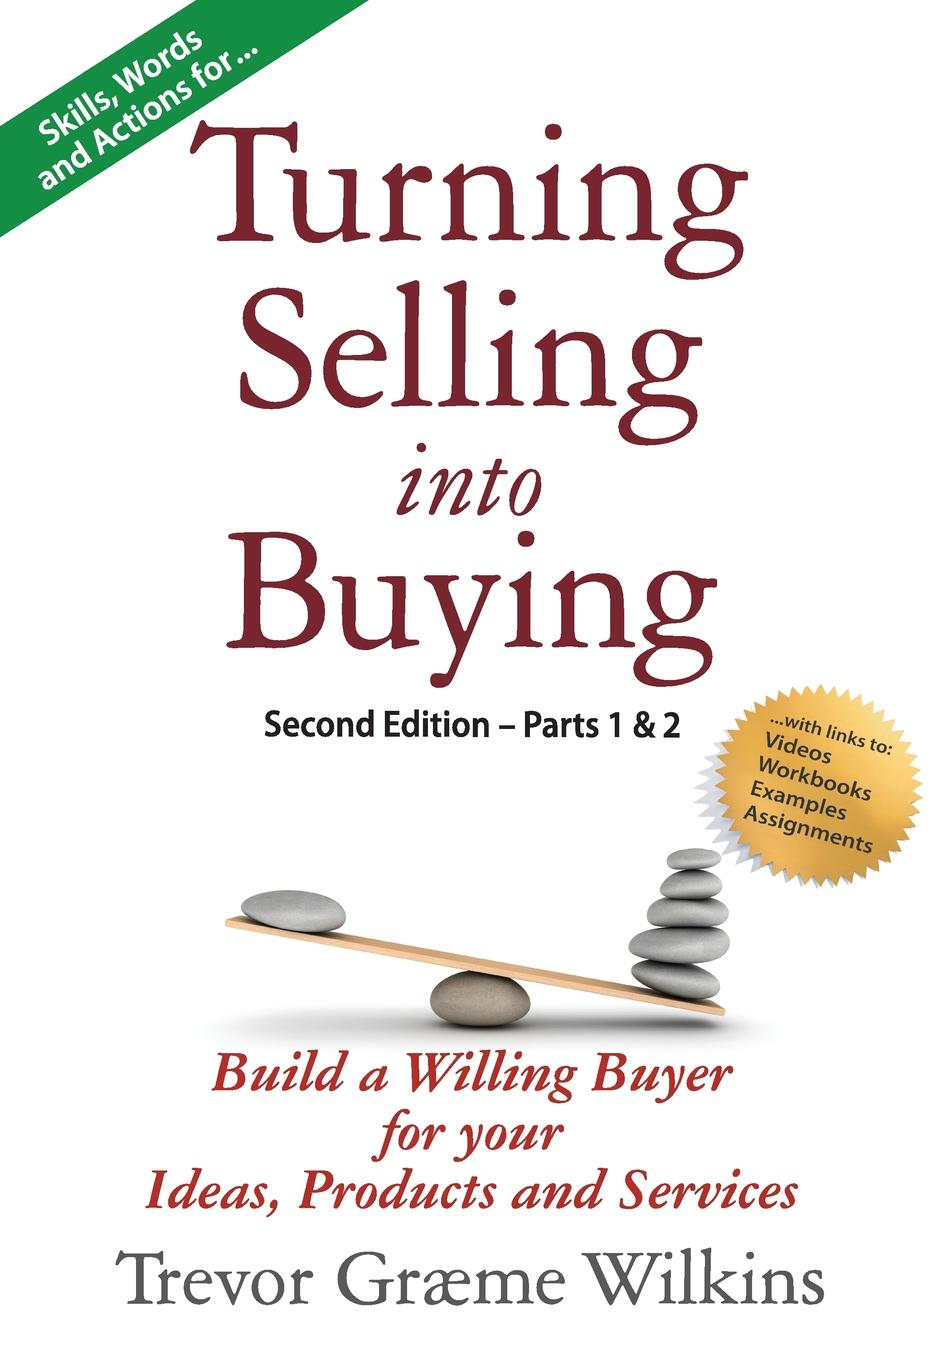 Turning Selling into Buying Parts 1 . 2 Second Edition. Build a Willing Buyer for what you offer Turning Selling into Buying strips away the fear uncertainty...